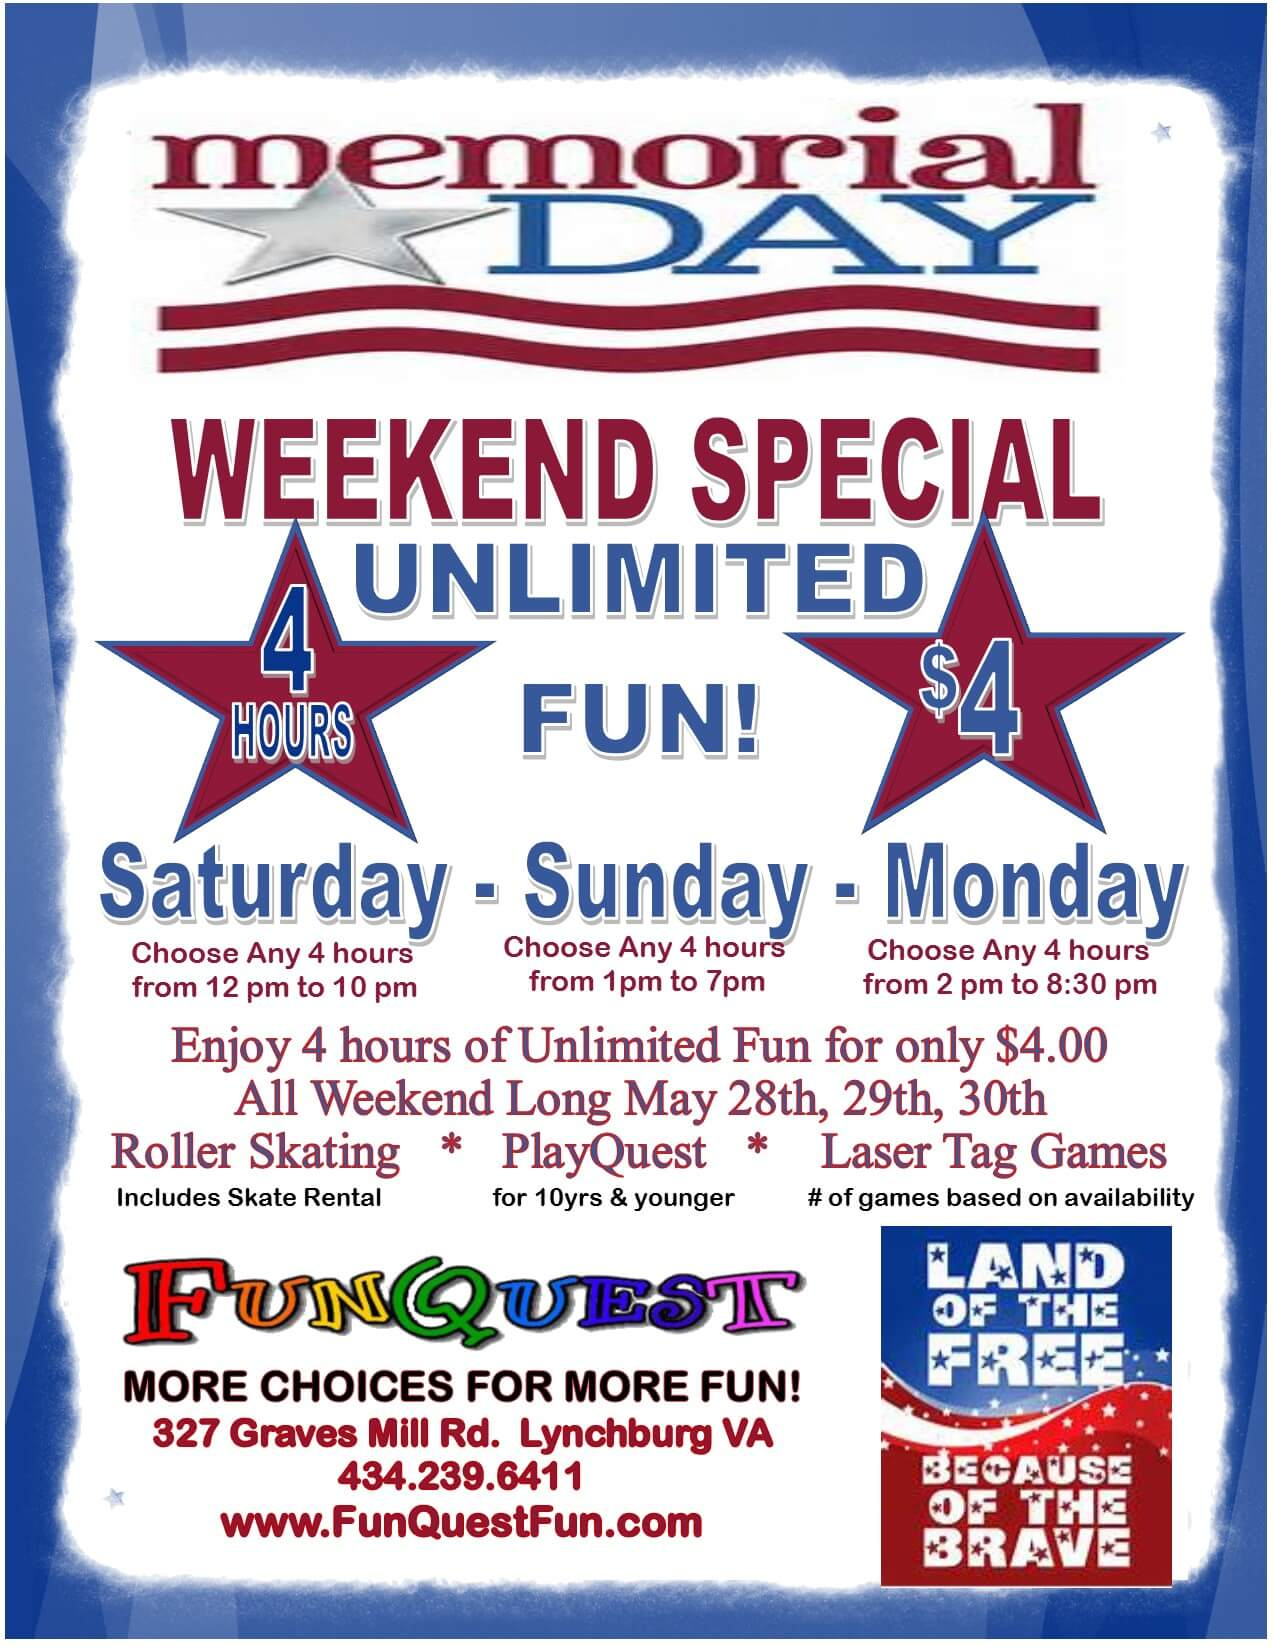 Mermorial Day Weekend $4 Unlimited 2016 (1)